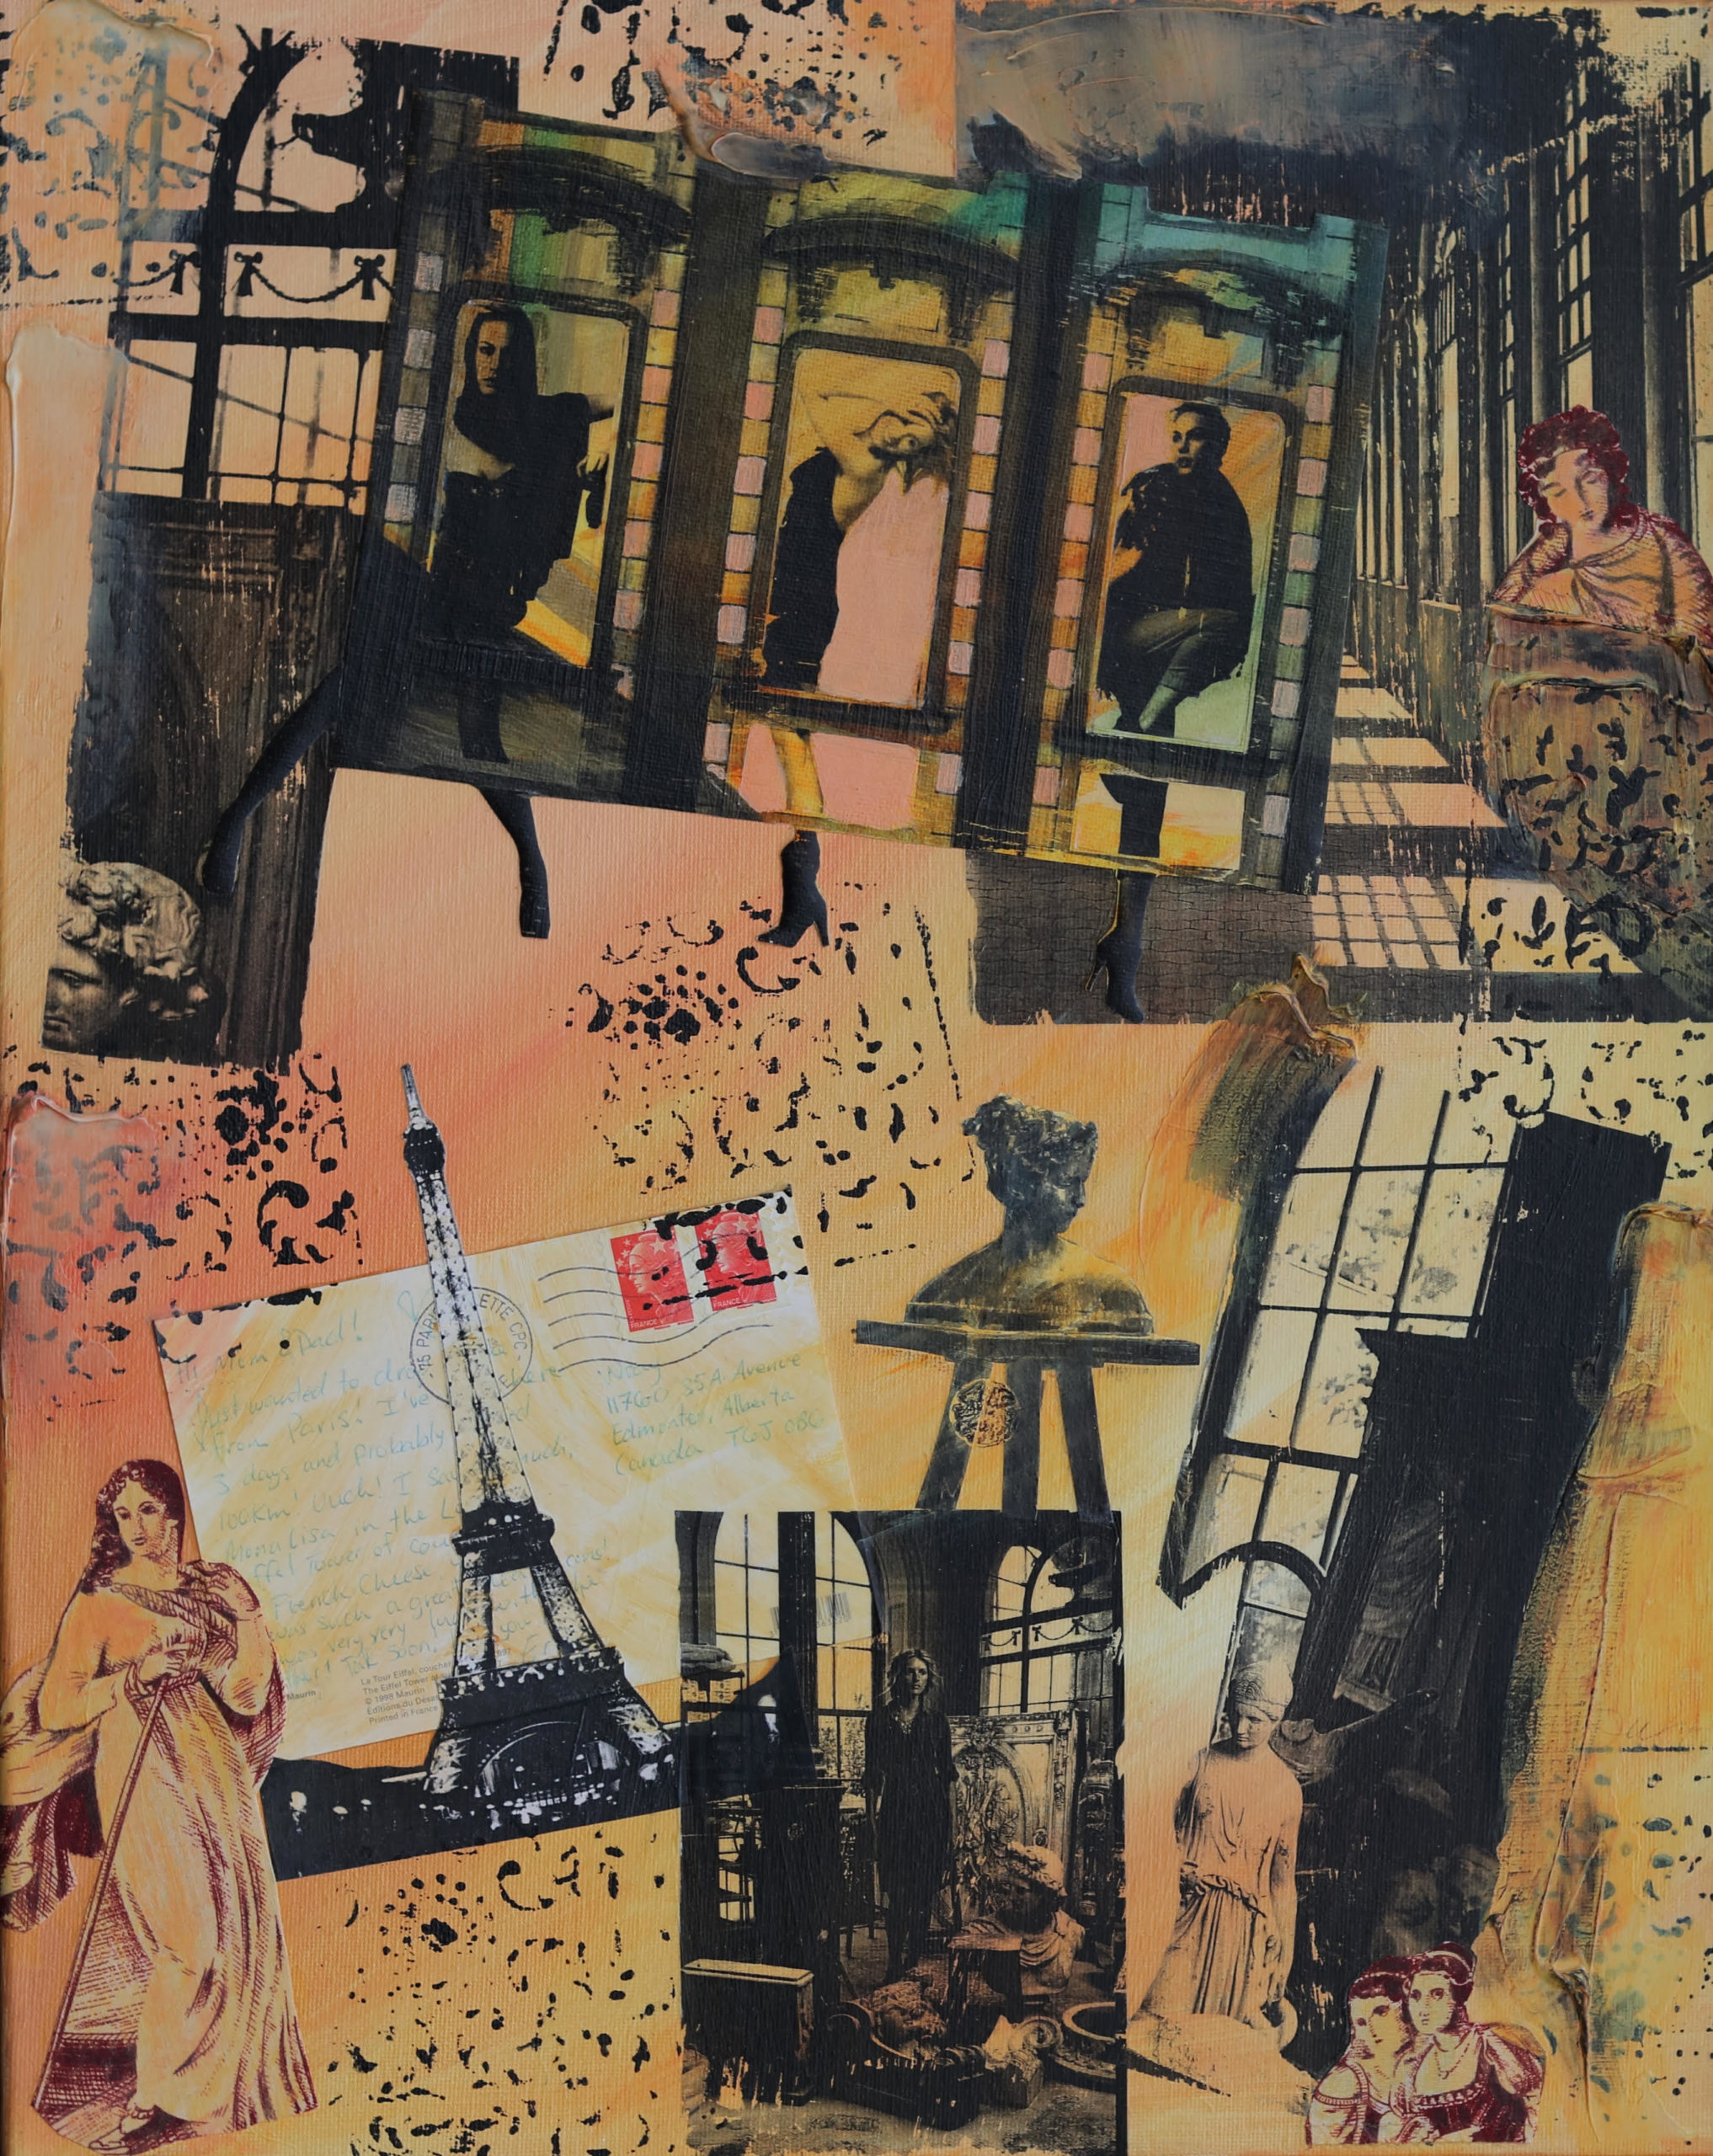 Johanna Wray Postcard from Paris, mixed media on canvas, 40 x50 cm framed